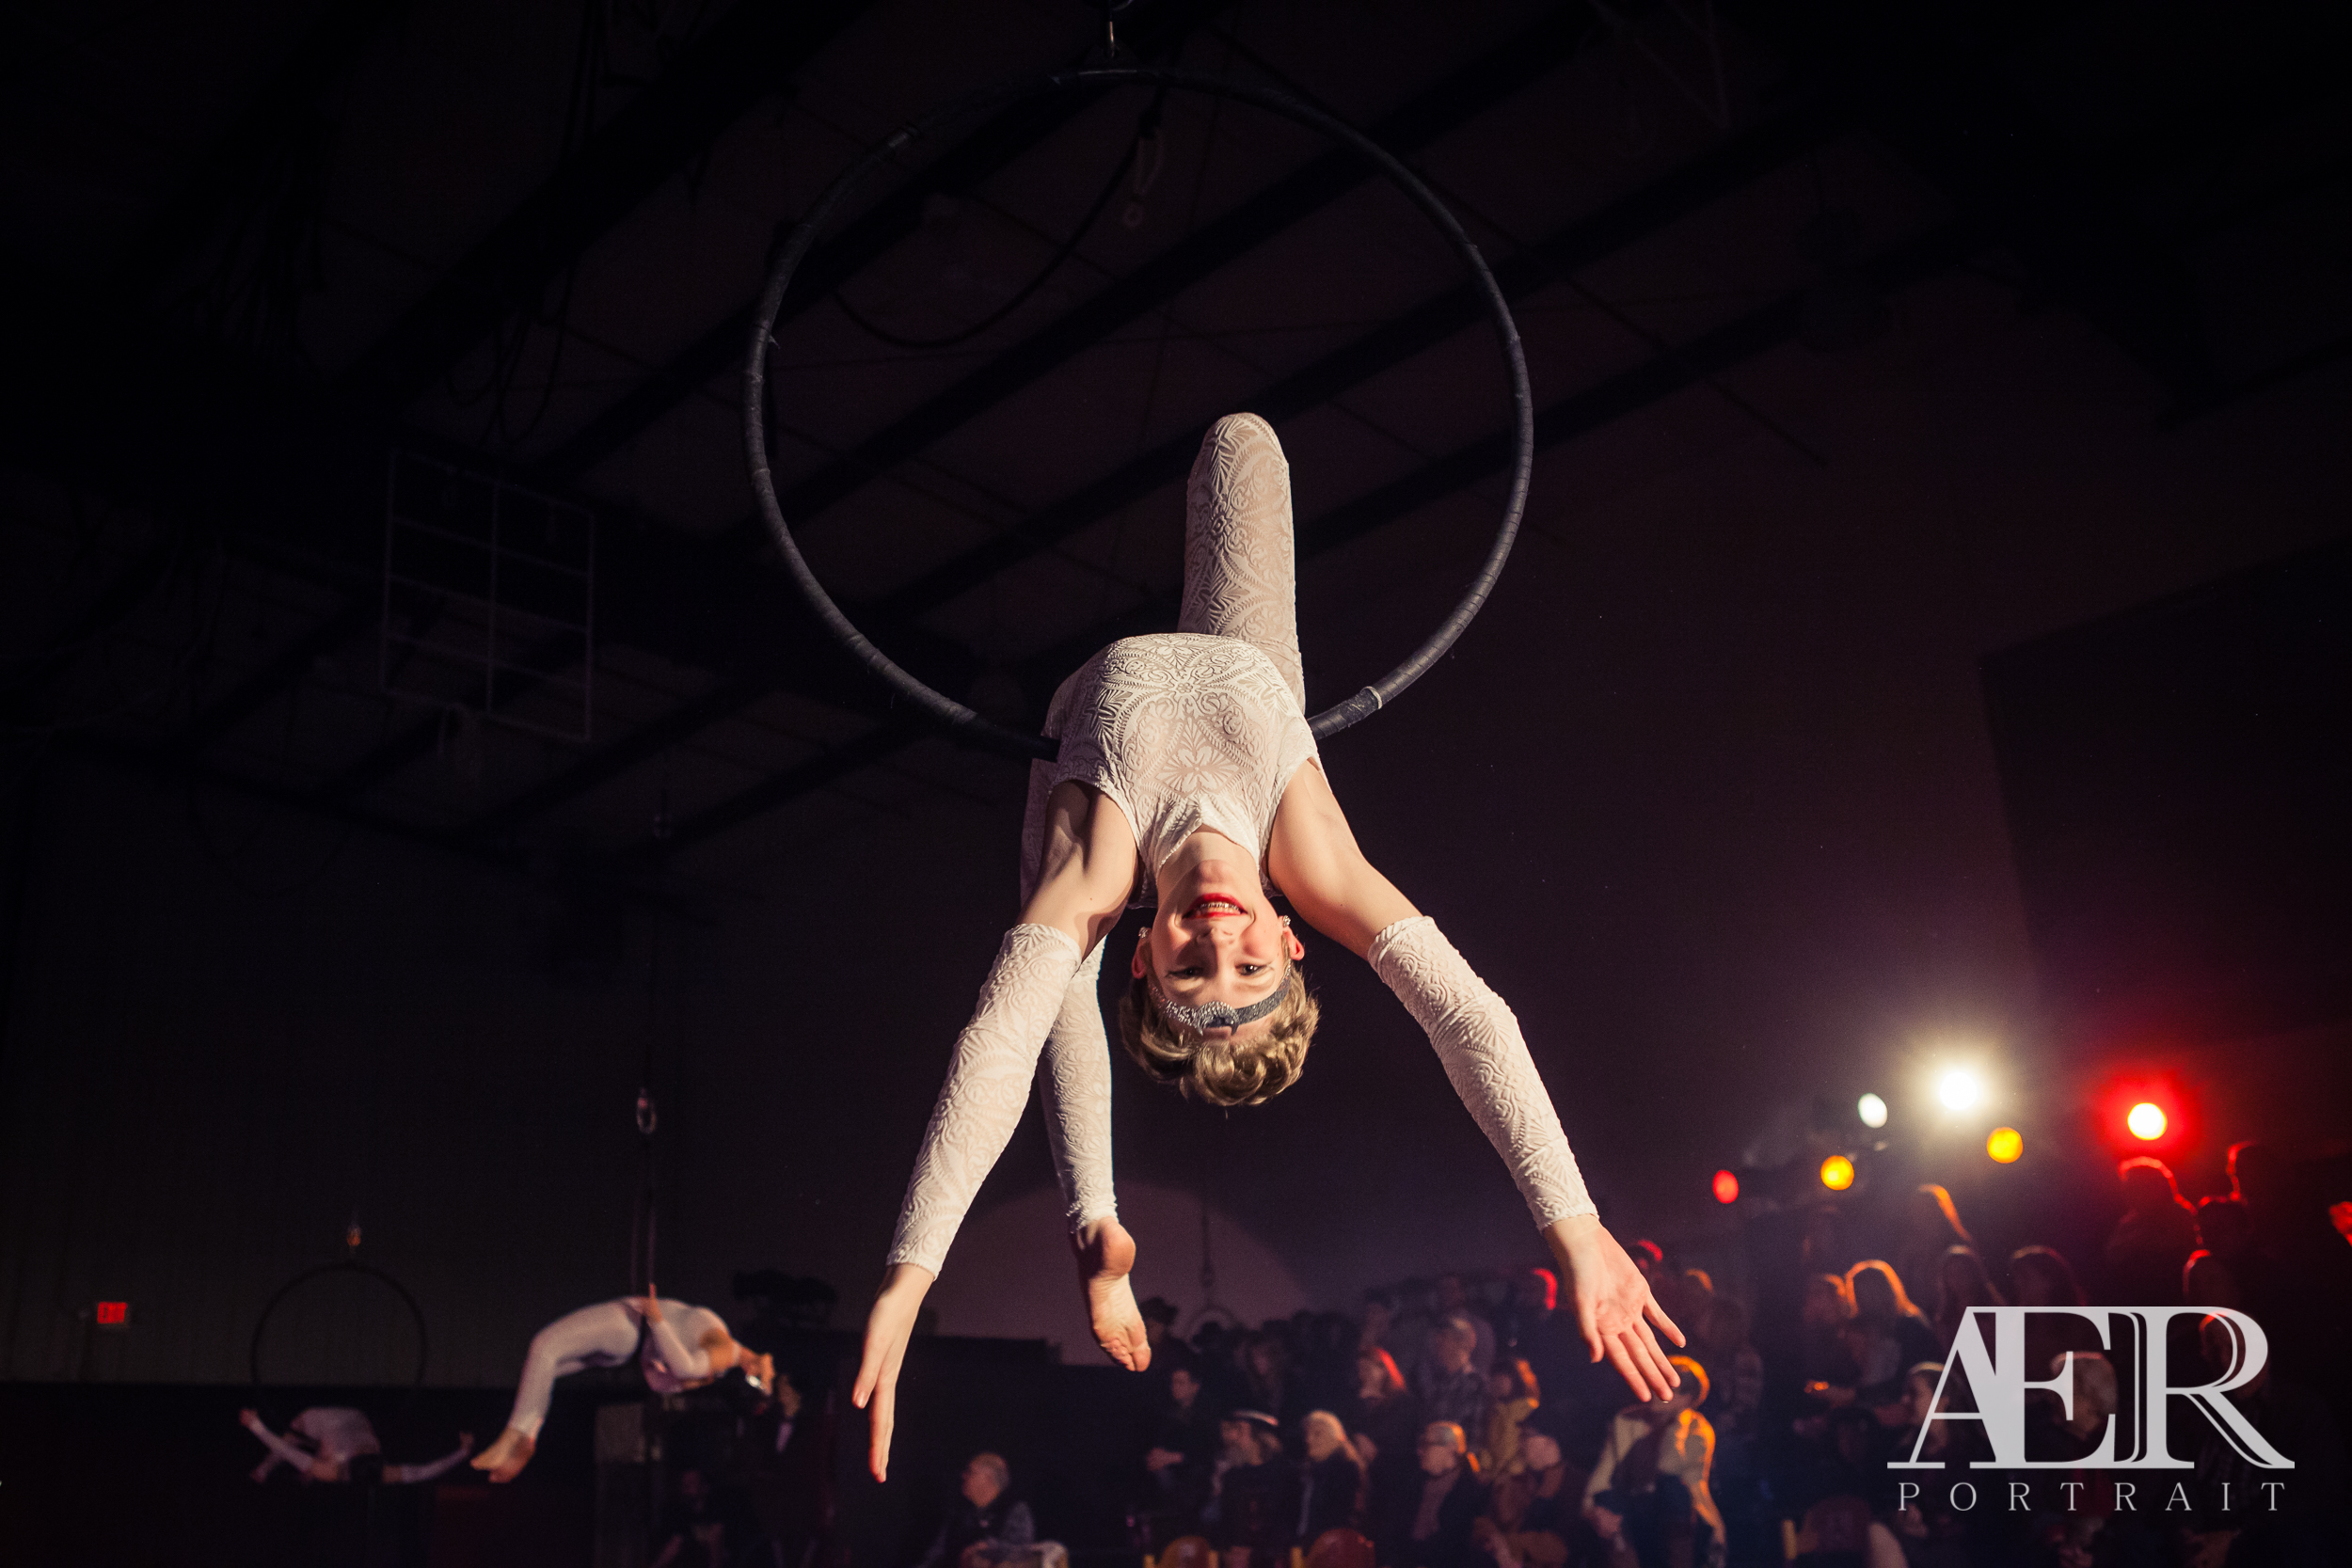 Louisville Performing Arts Photography - Turners Circus - AER Portrait 34